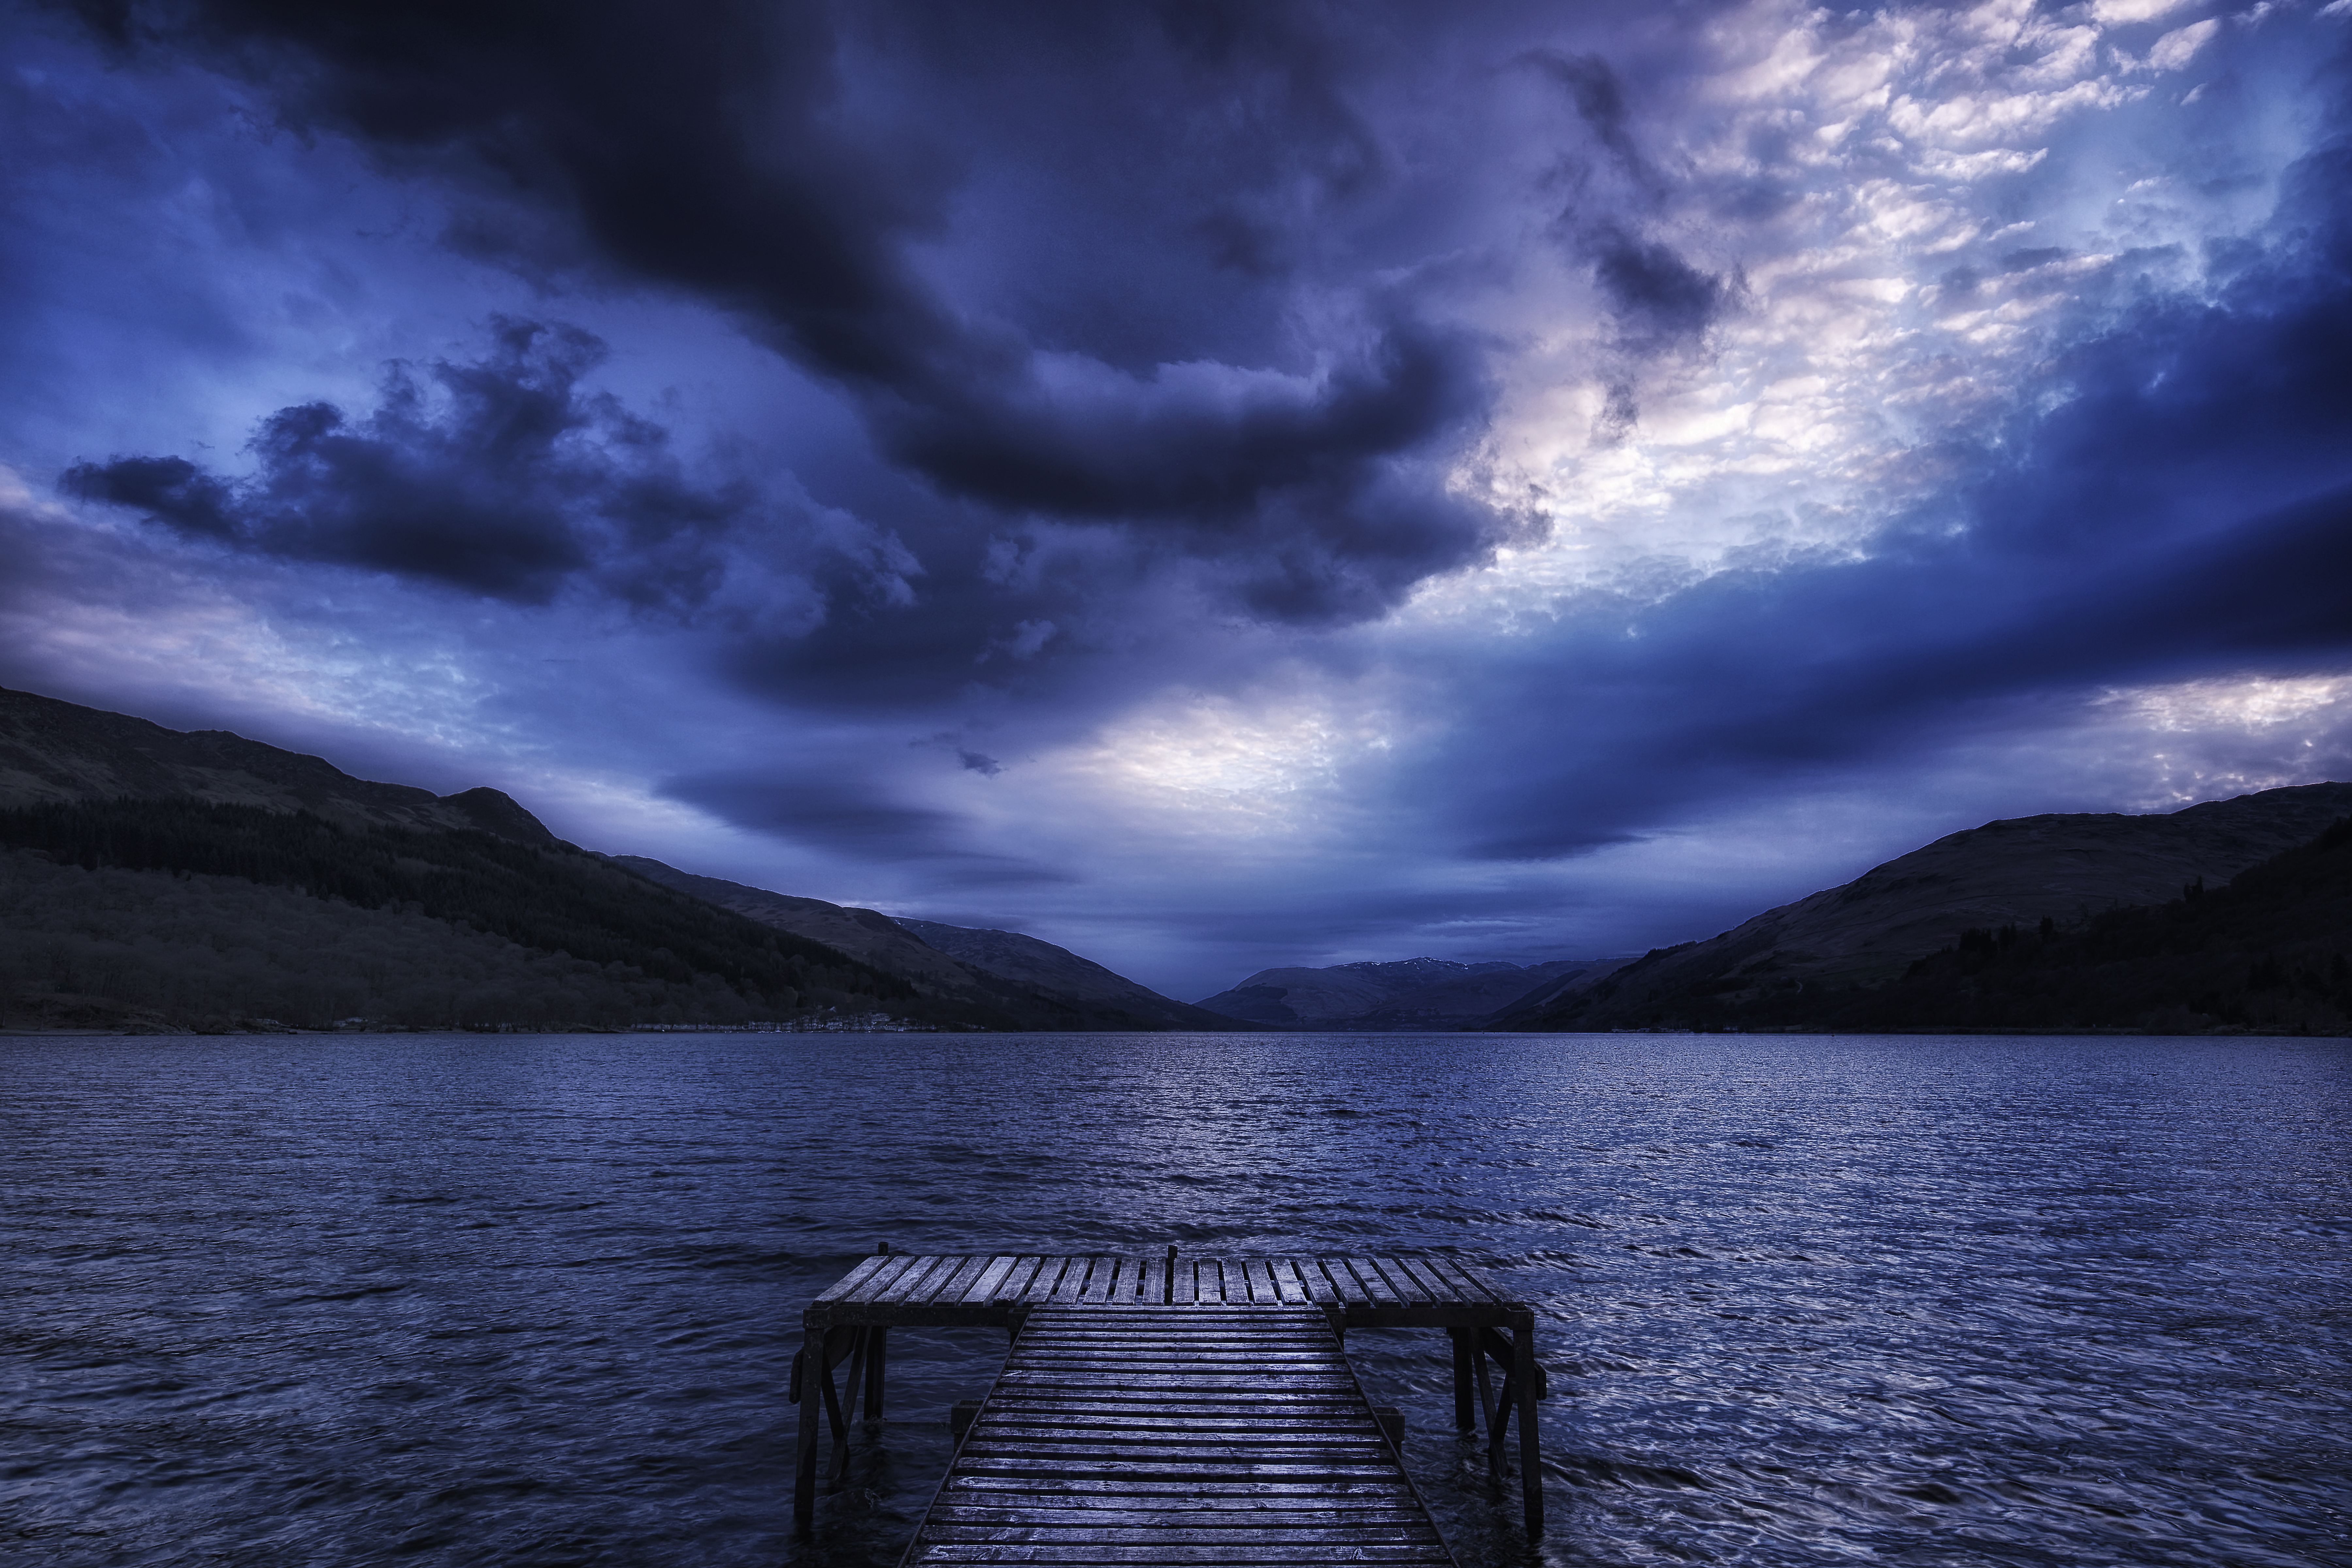 64140 download wallpaper Nature, Mountains, Sea, Clouds, Pier, Evening, Scotland, Mainly Cloudy, Overcast screensavers and pictures for free